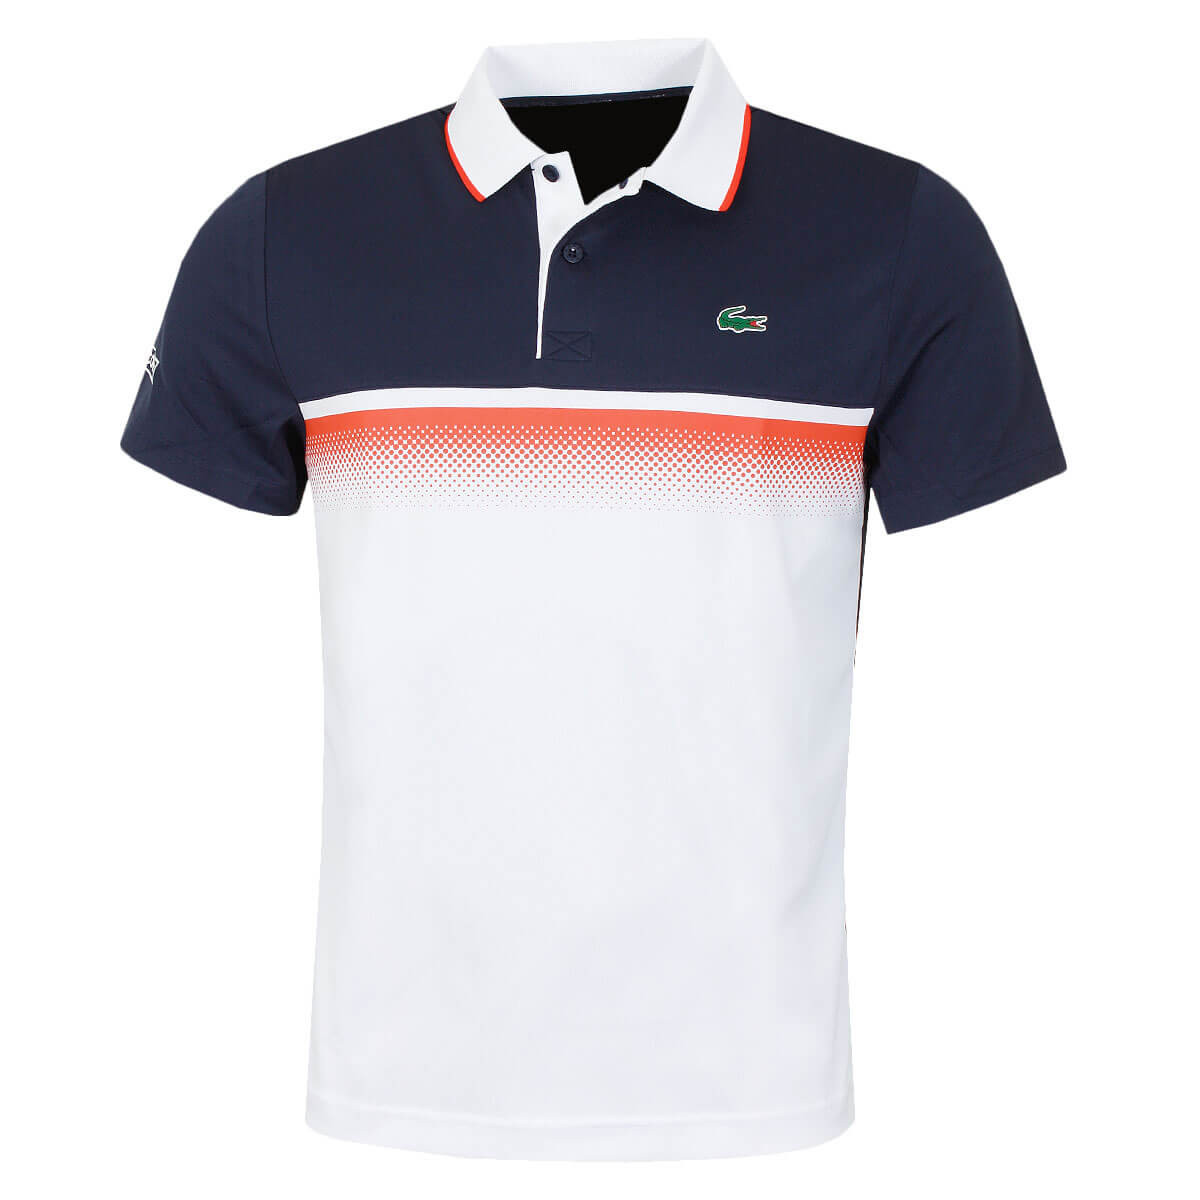 5d298e96 Lacoste Mens 2019 Aspirational Ribbed Collar Polo Shirt